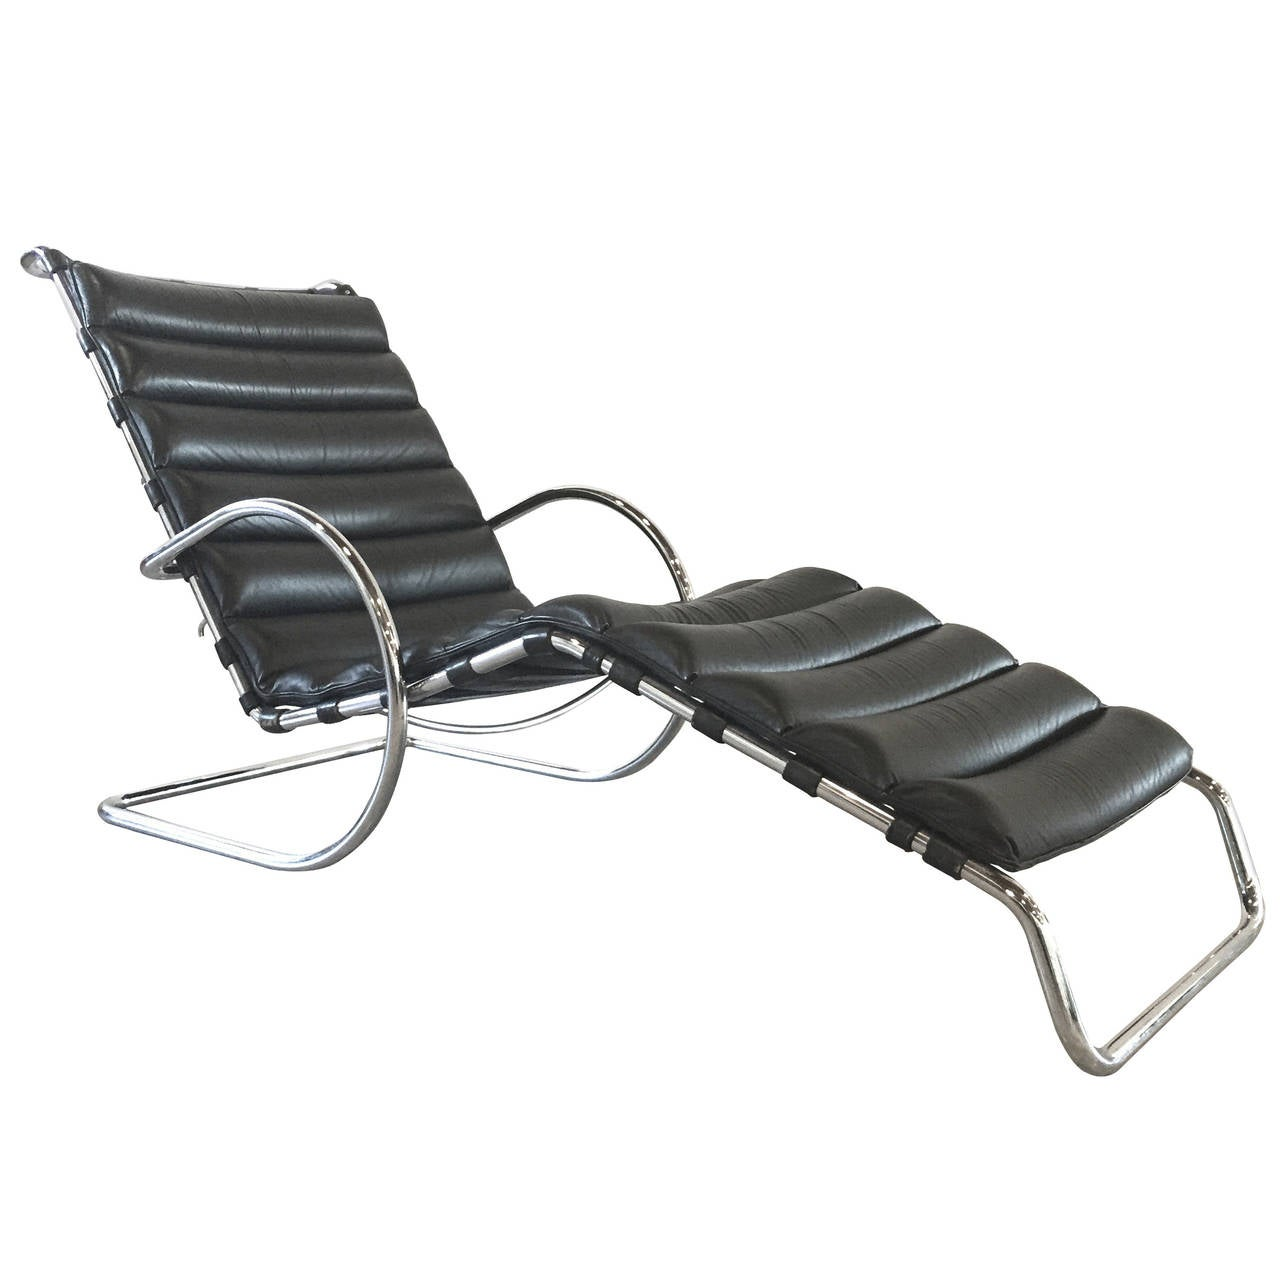 Ludwig mies van der rohe chaise lounge chair on sale at for Black friday chaise longue